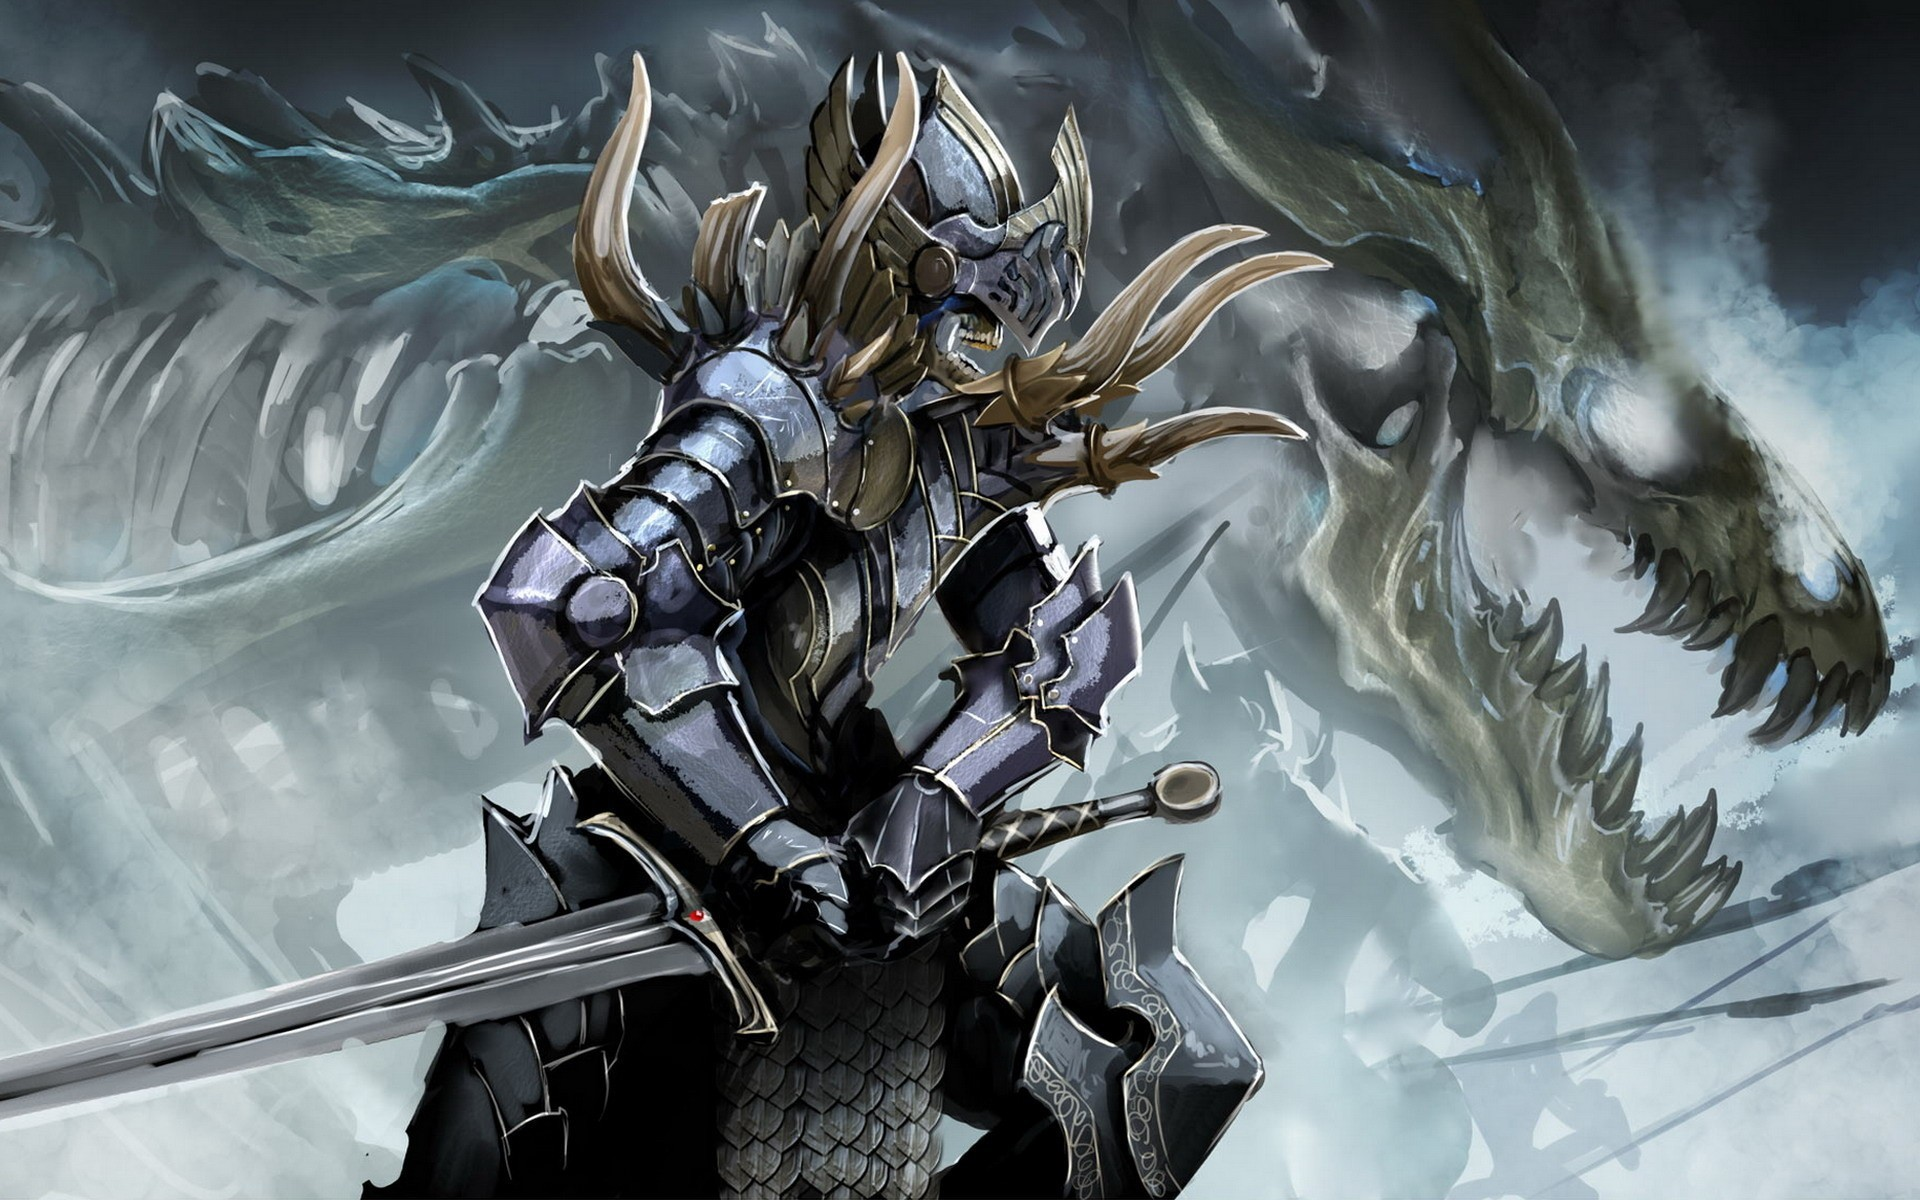 soldiers skulls Dragons weapons HD Wallpaper